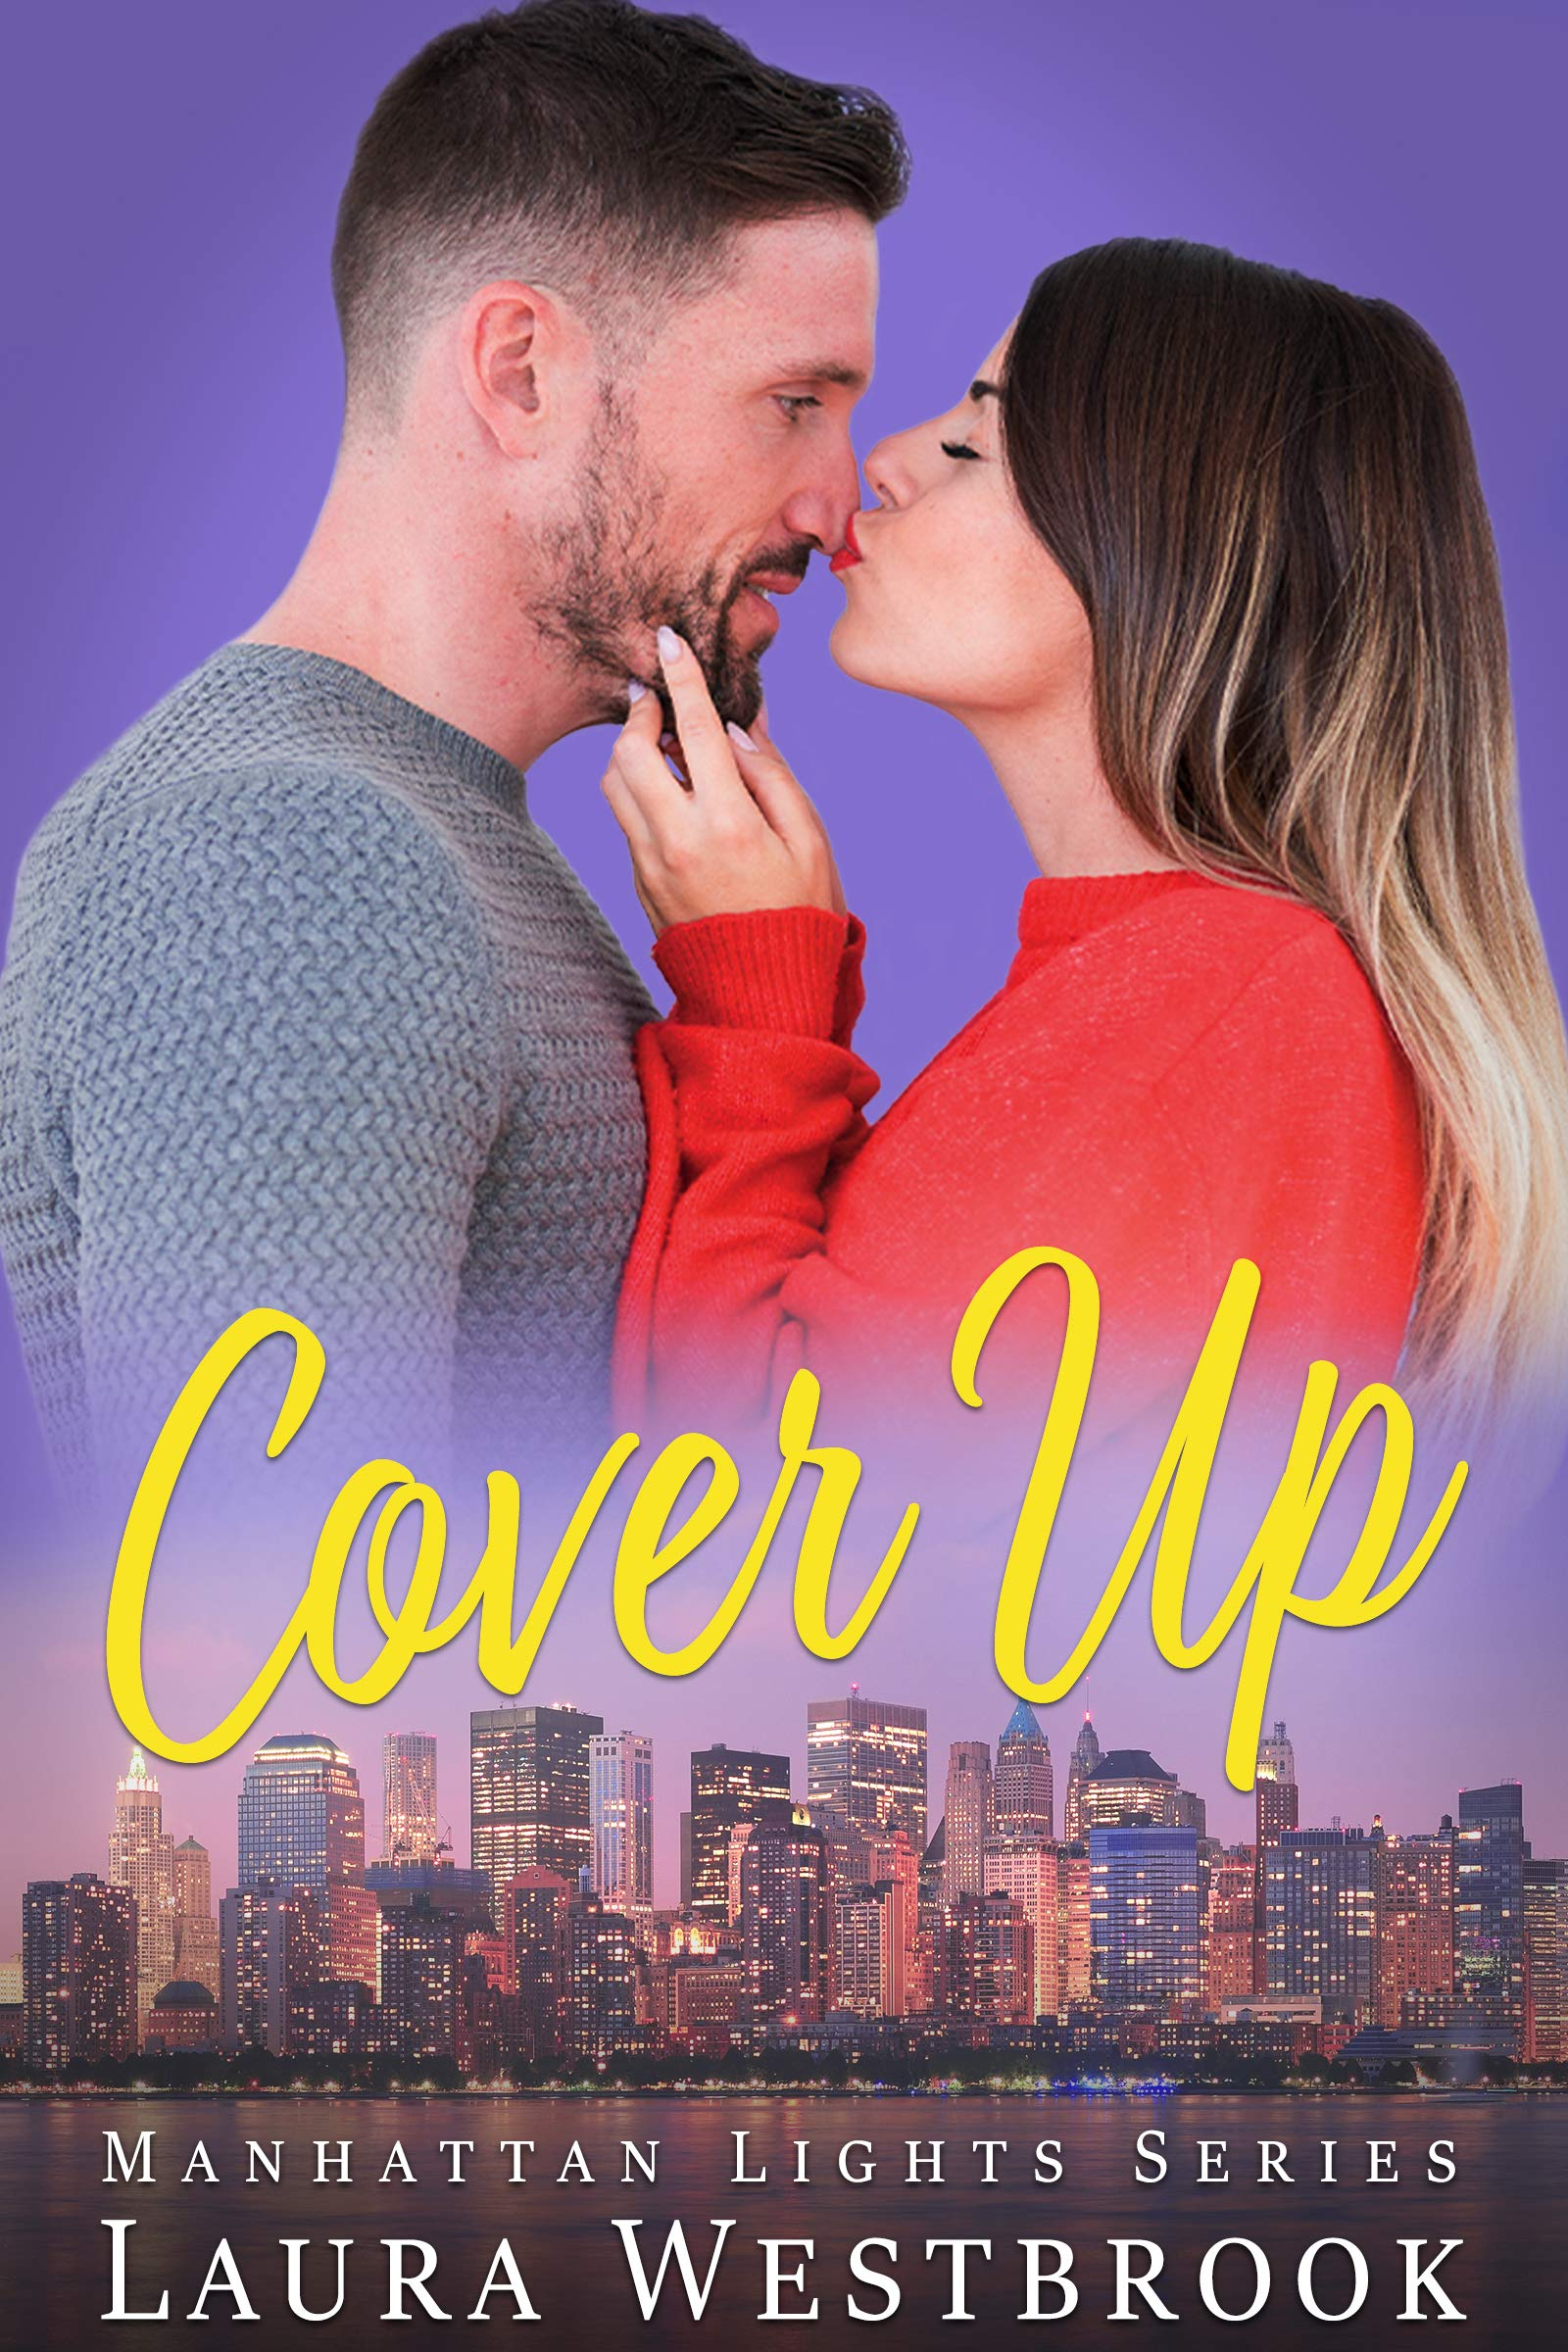 Cover Up: A Sweet Romance (Manhattan Lights Series Book 3)